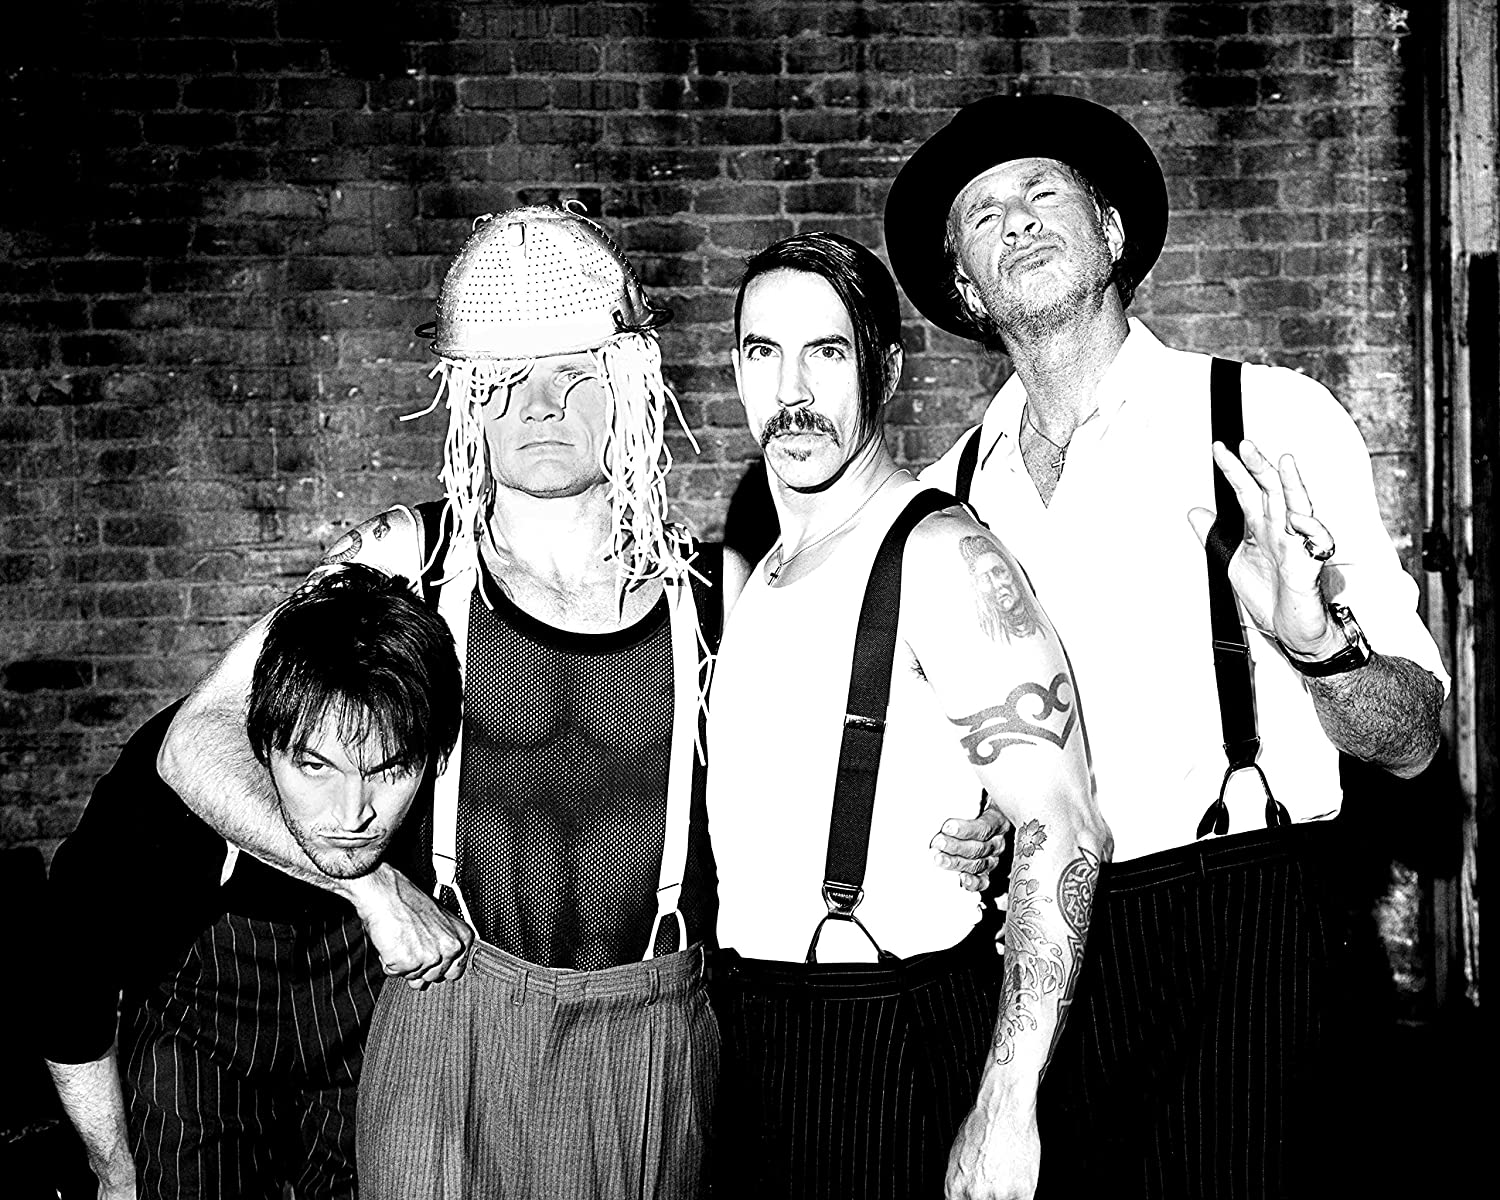 Red Hot Chili Peppers Band Concert Poster Home Decor #1 16x20 Inches